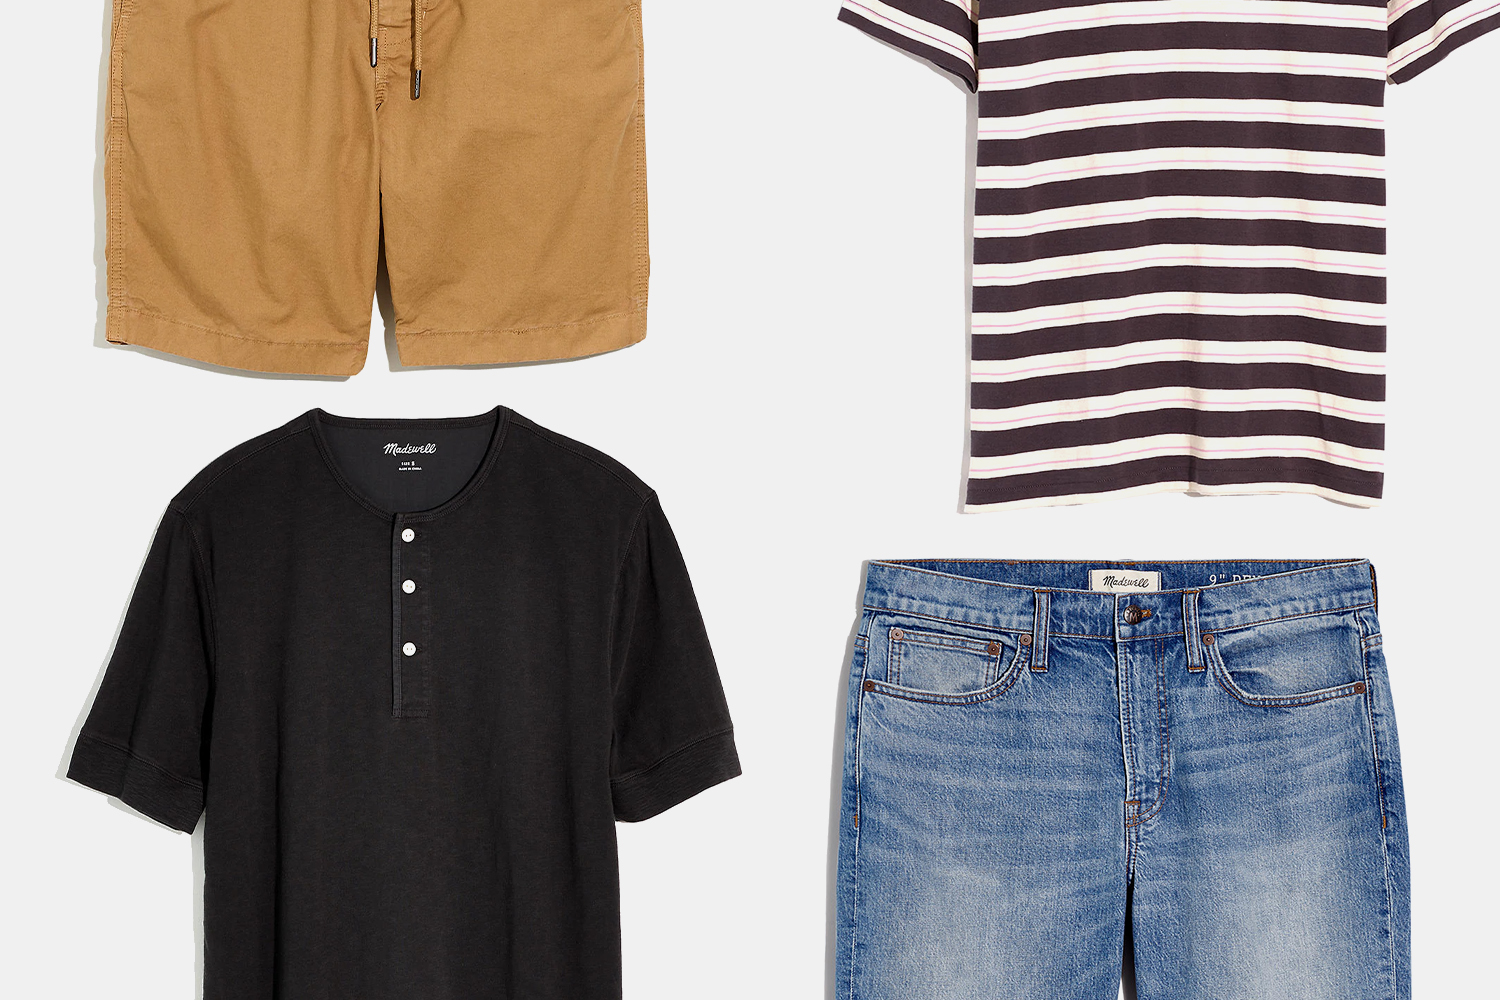 Deal: Summer Essentials Are Up to 40% Off at Madewell